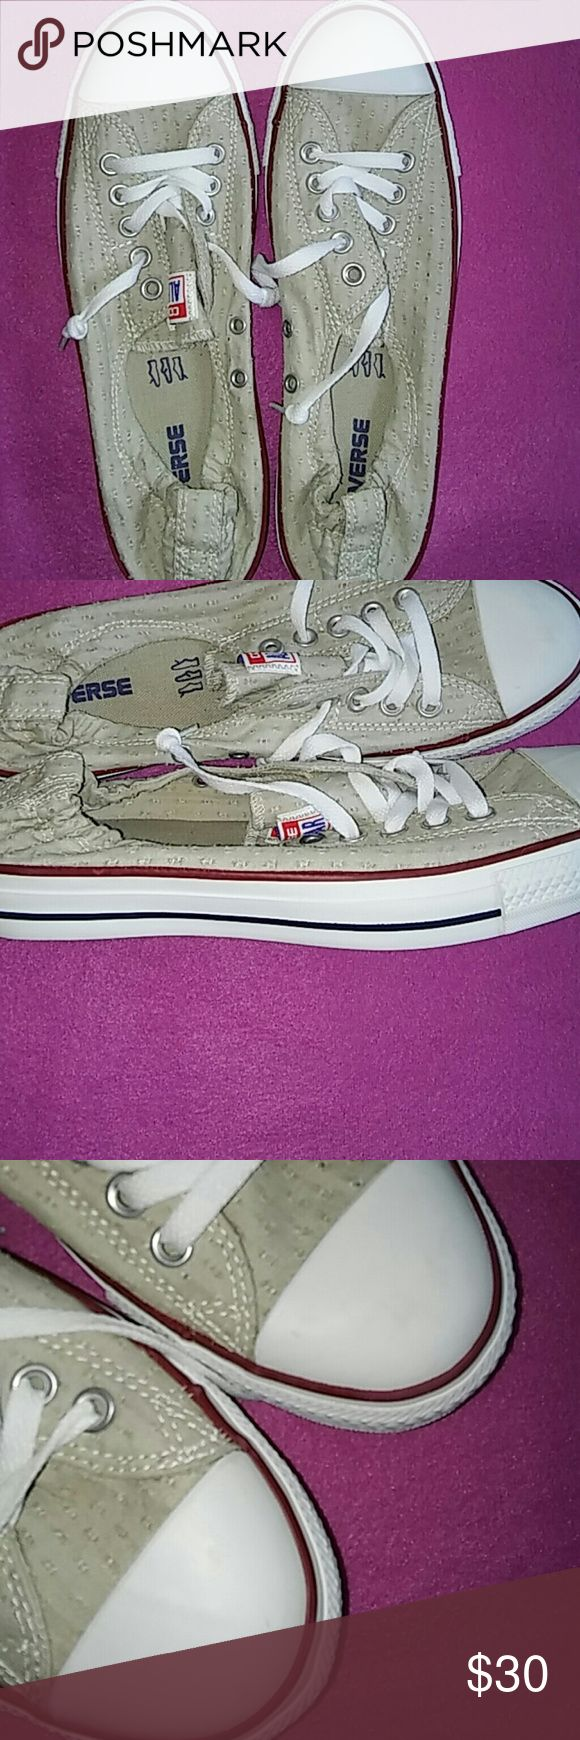 Ladies Converse sneaker size 11 New tan Converse size 11 Converse Shoes Sneakers